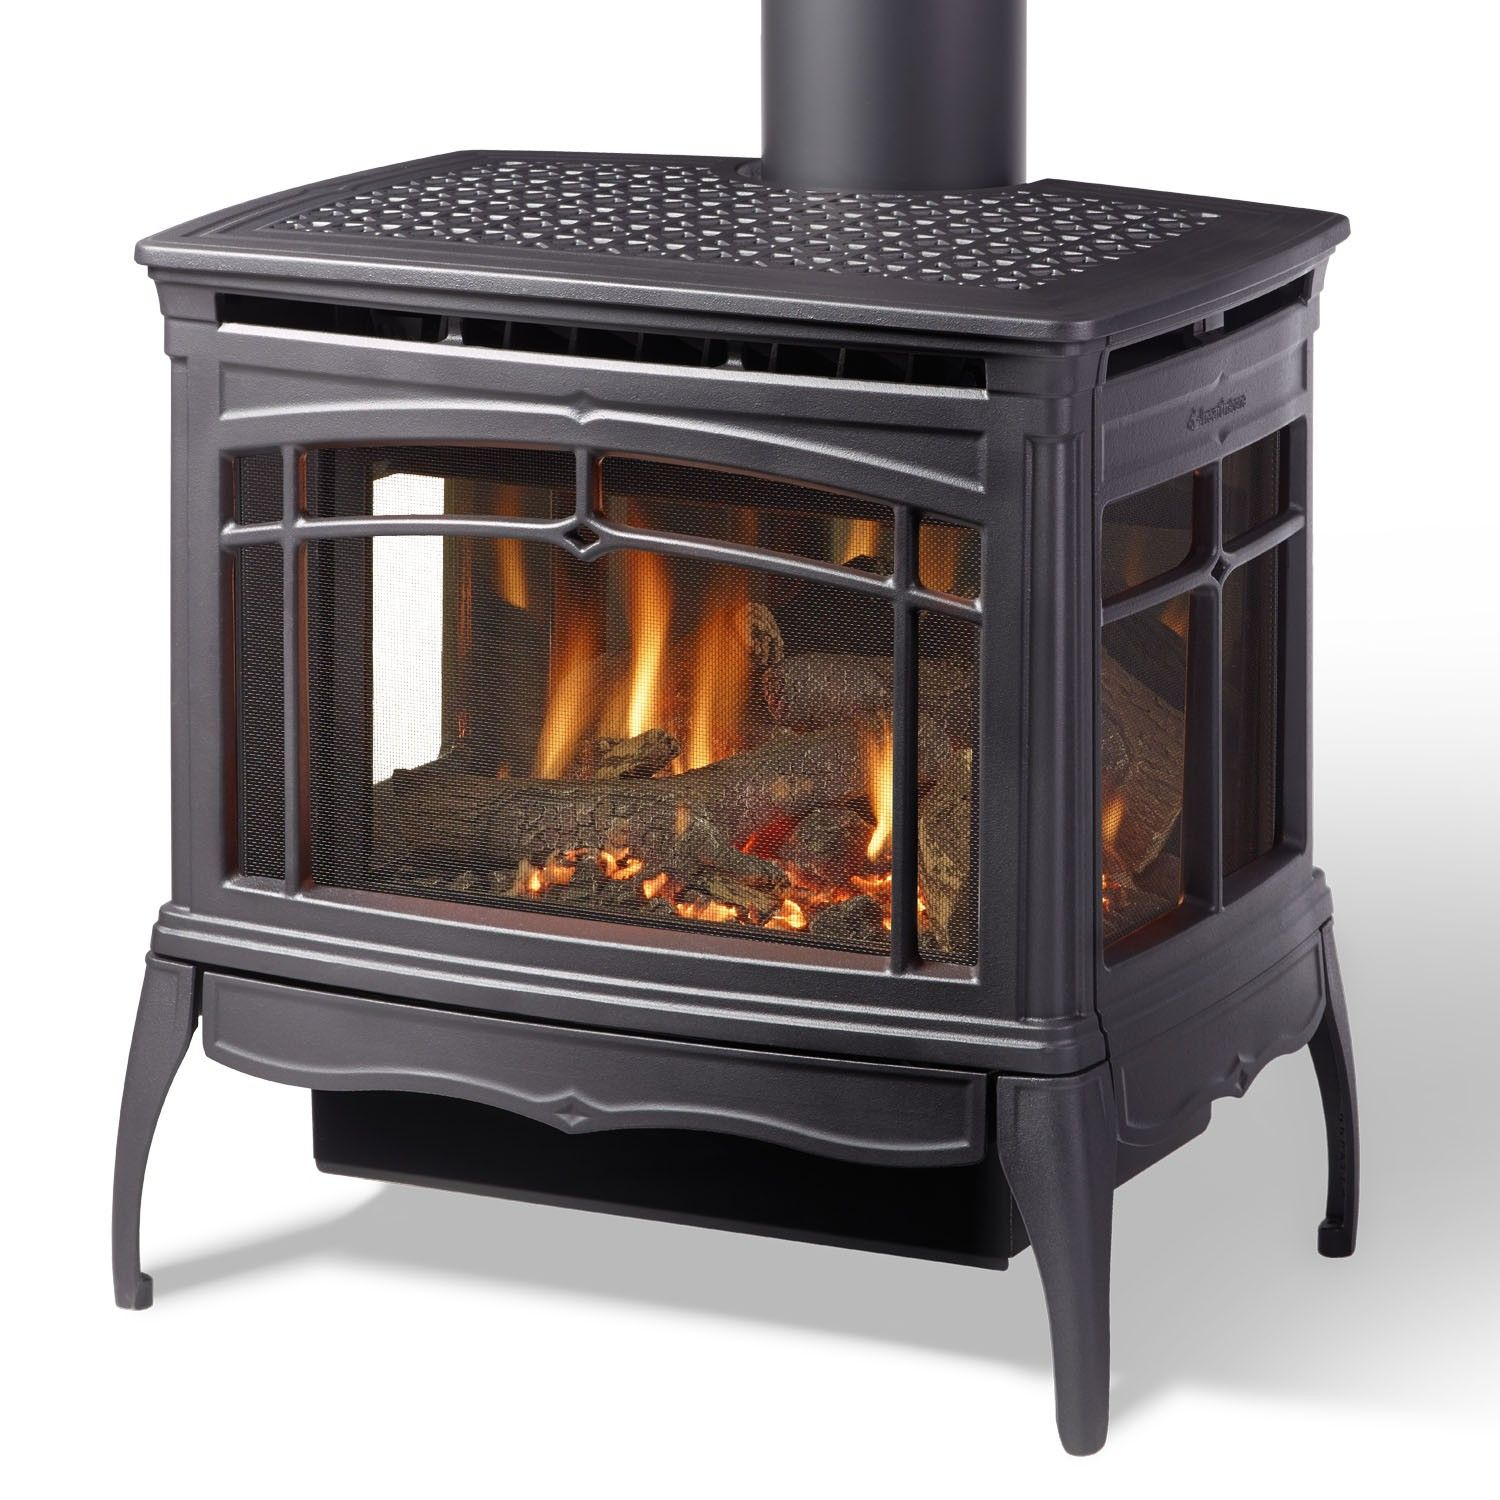 Freestanding Gas Fireplaces High Country Stoves Fireplaces Gas Fireplace Gas Stove Wood Stove